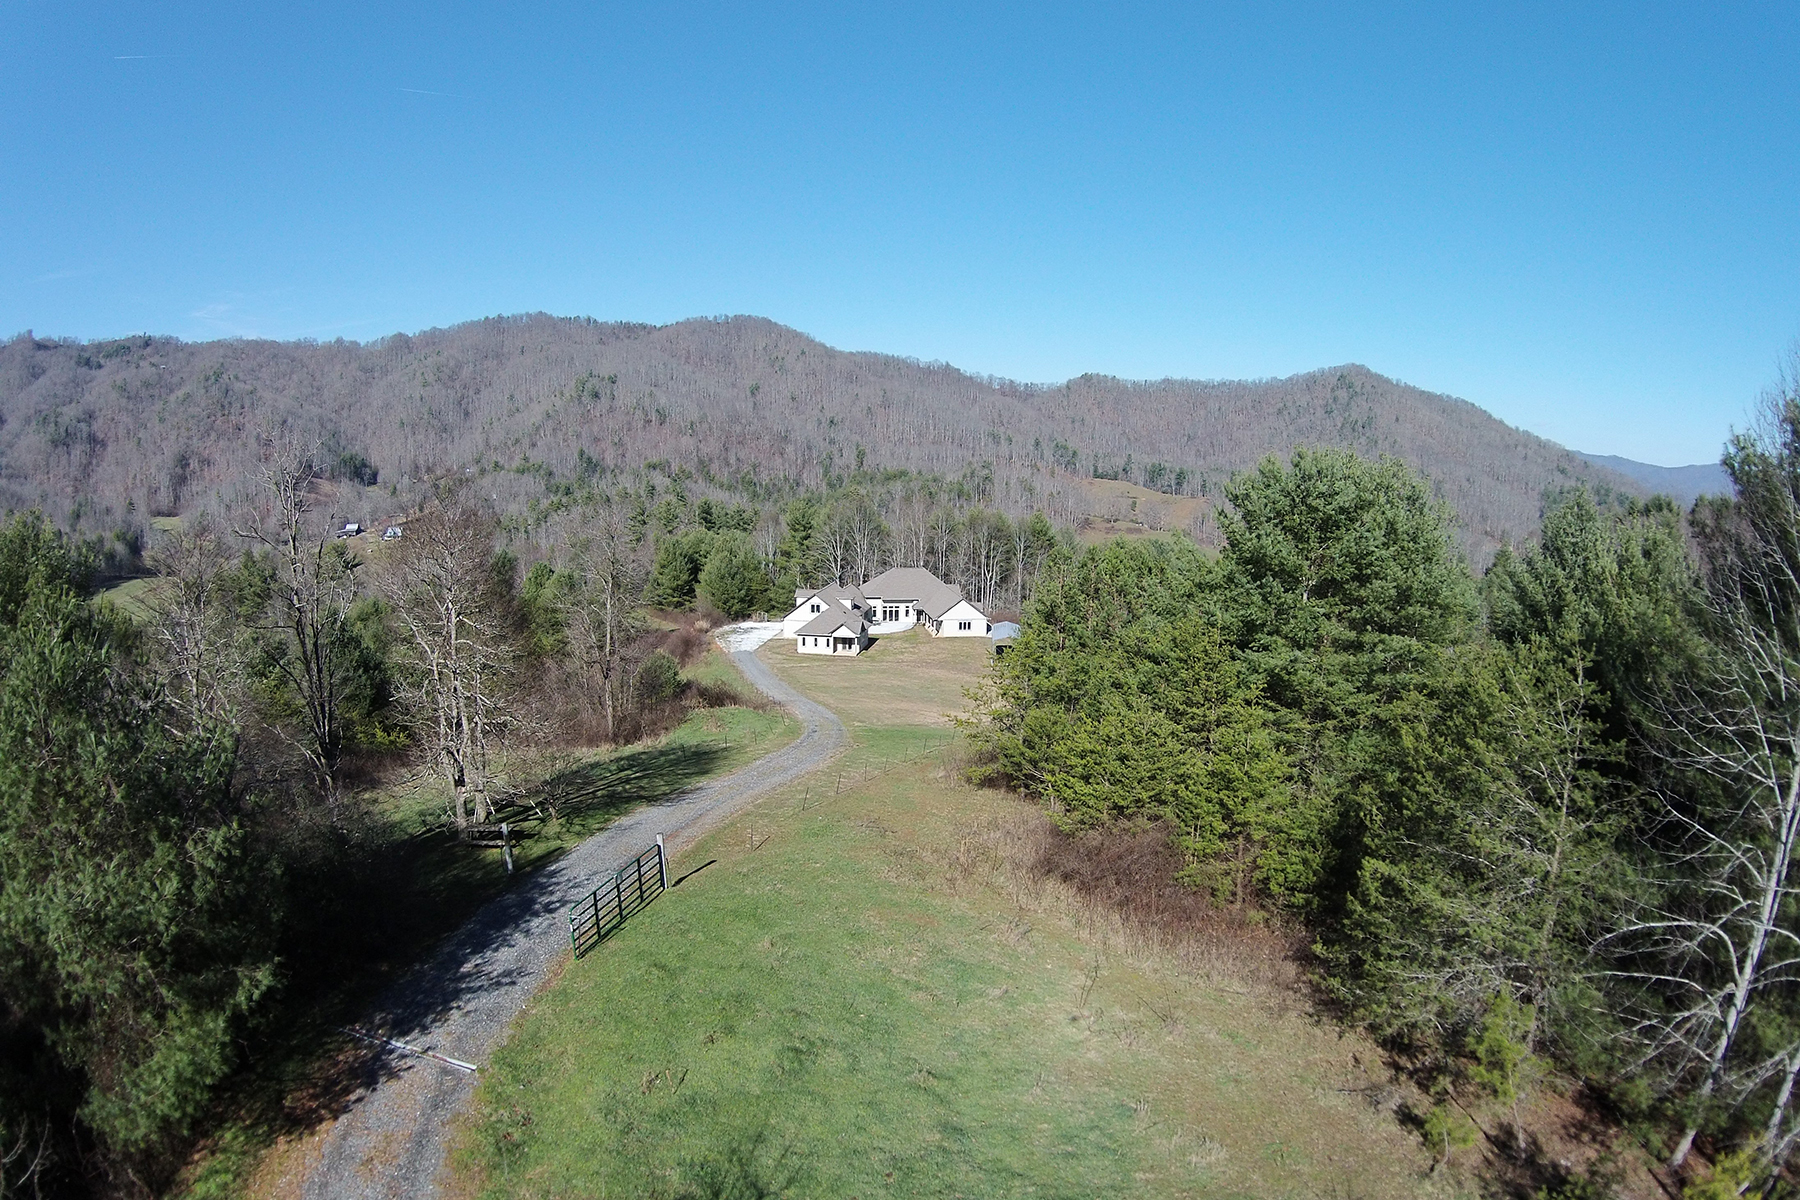 Maison unifamiliale pour l à vendre à PRIVATE, GATED MOUNTAIN ESTATE ON 95 ACRES 2016 Upper Paw Paw Rd, Marshall, Carolina Du Nord, 28753 États-UnisDans/Autour: Asheville